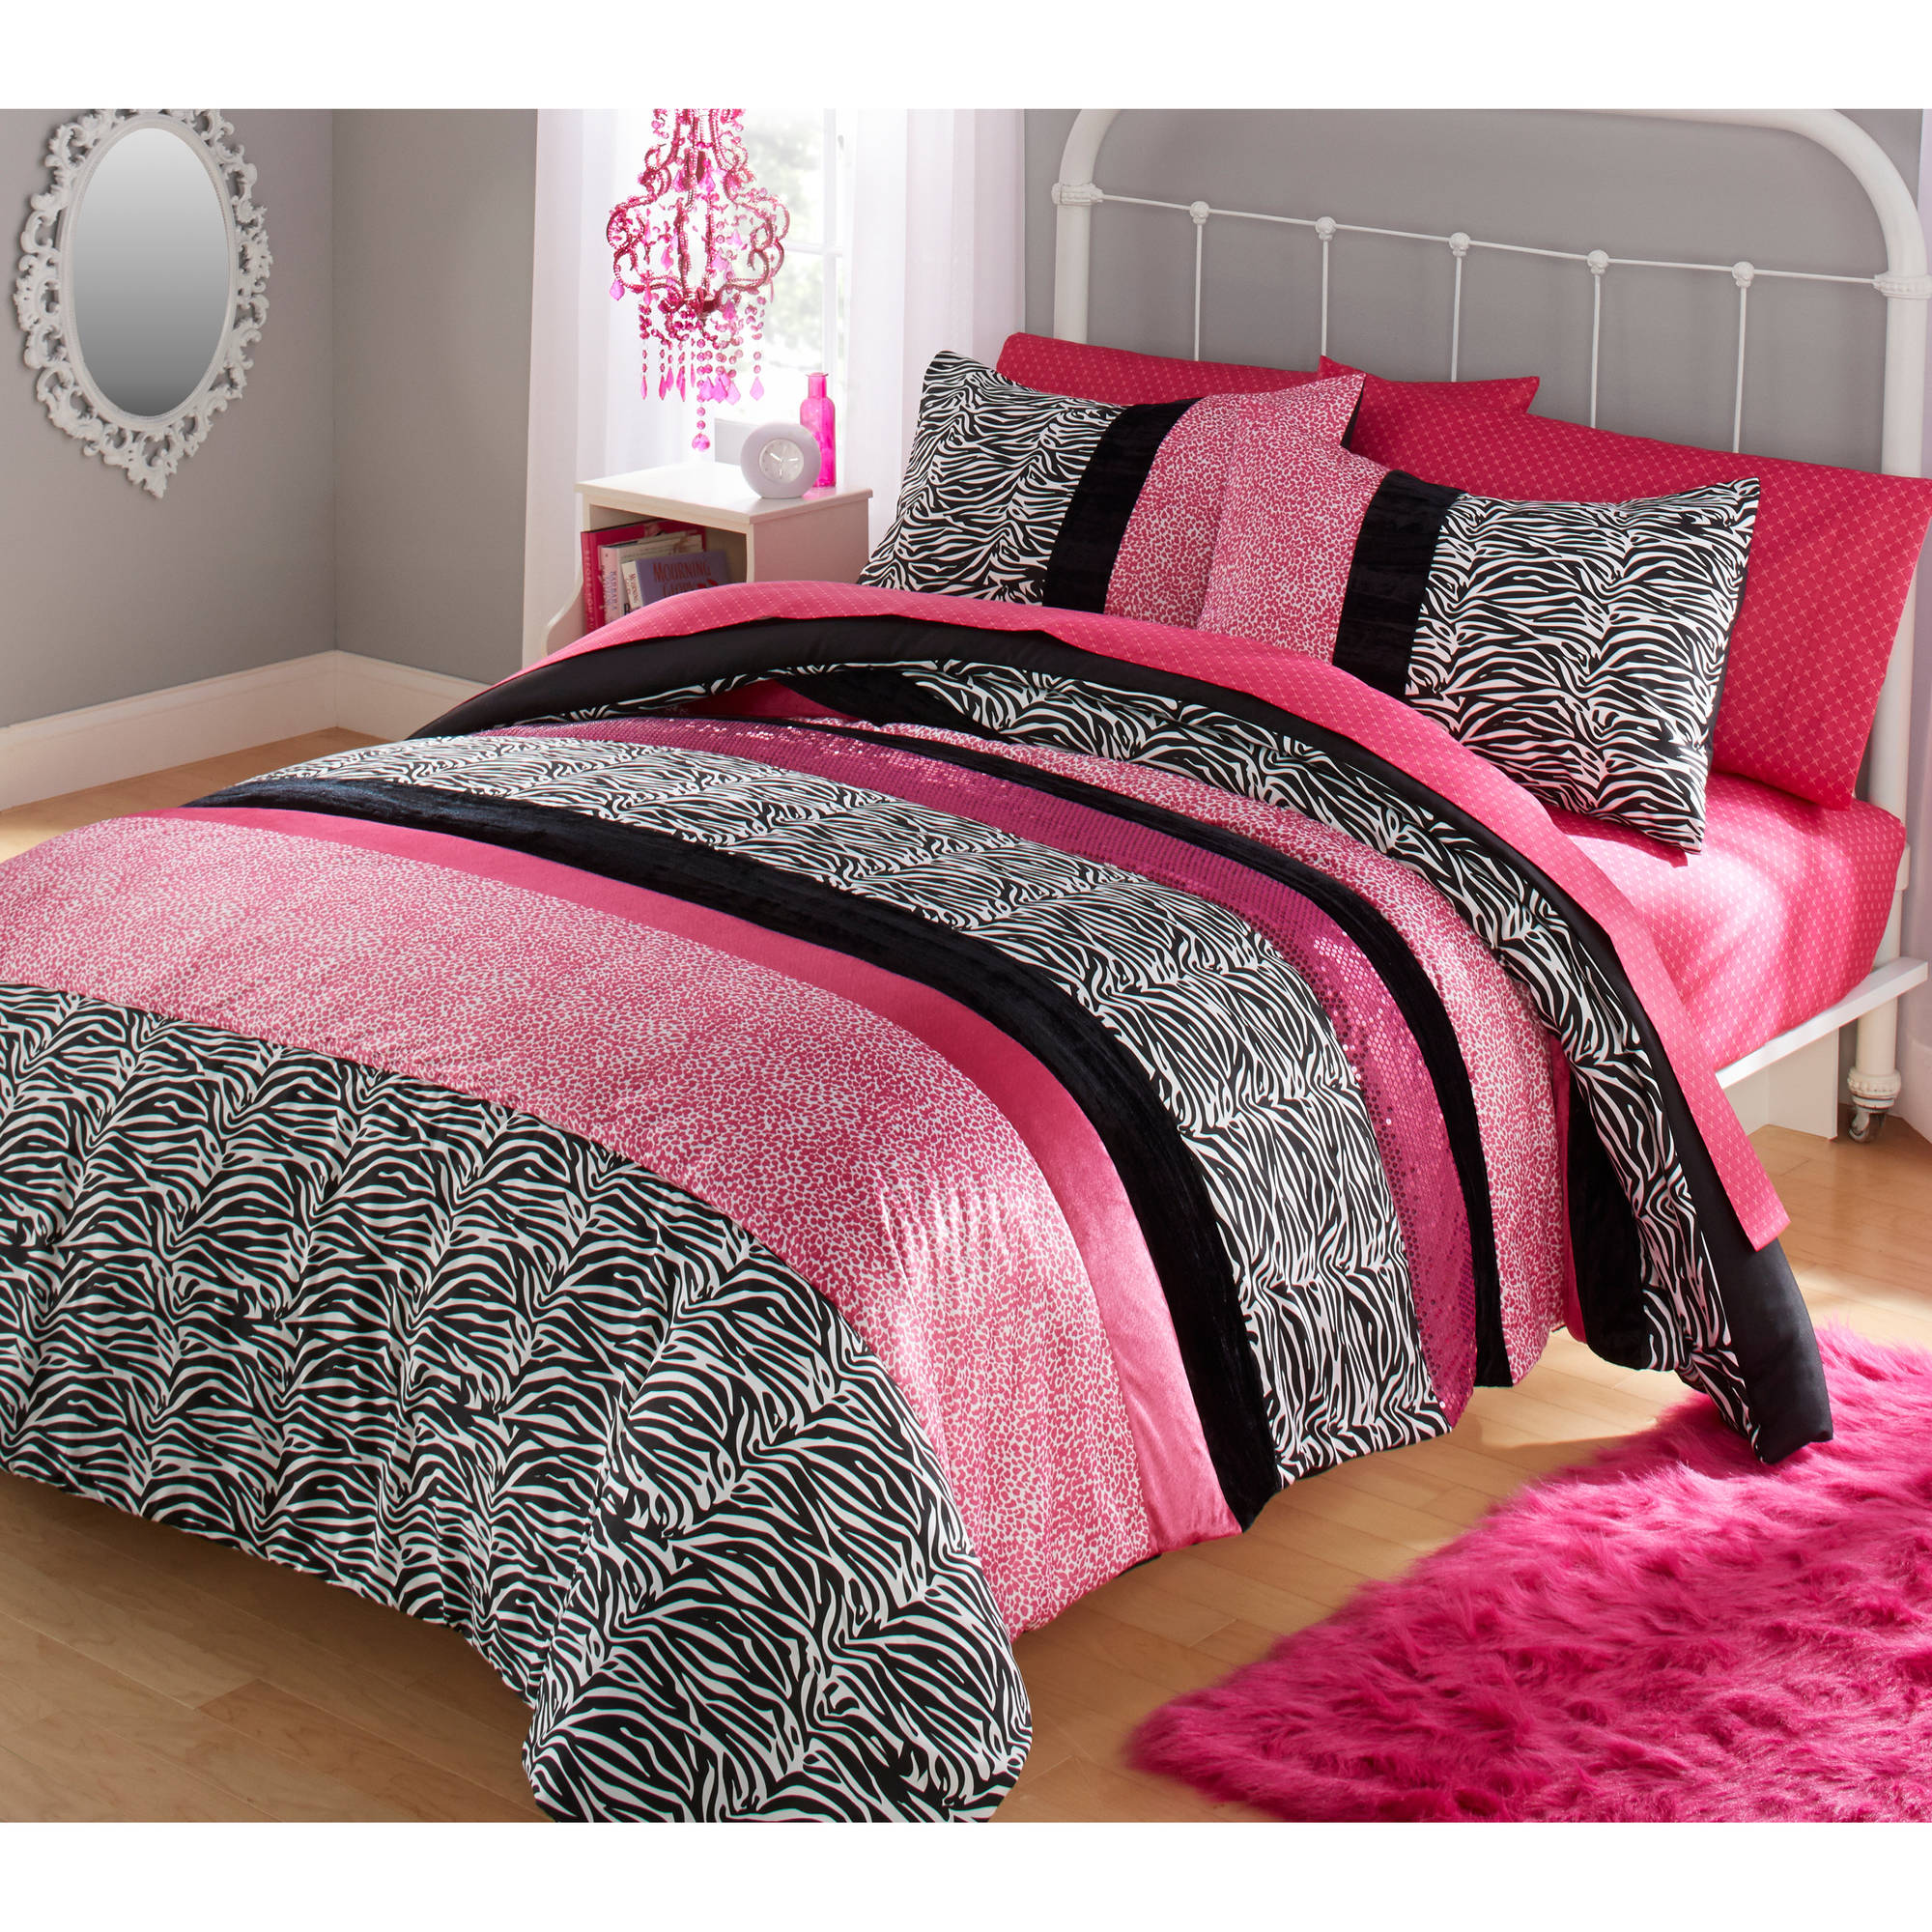 Your Zone Zebra Bedding forter Set Walmart